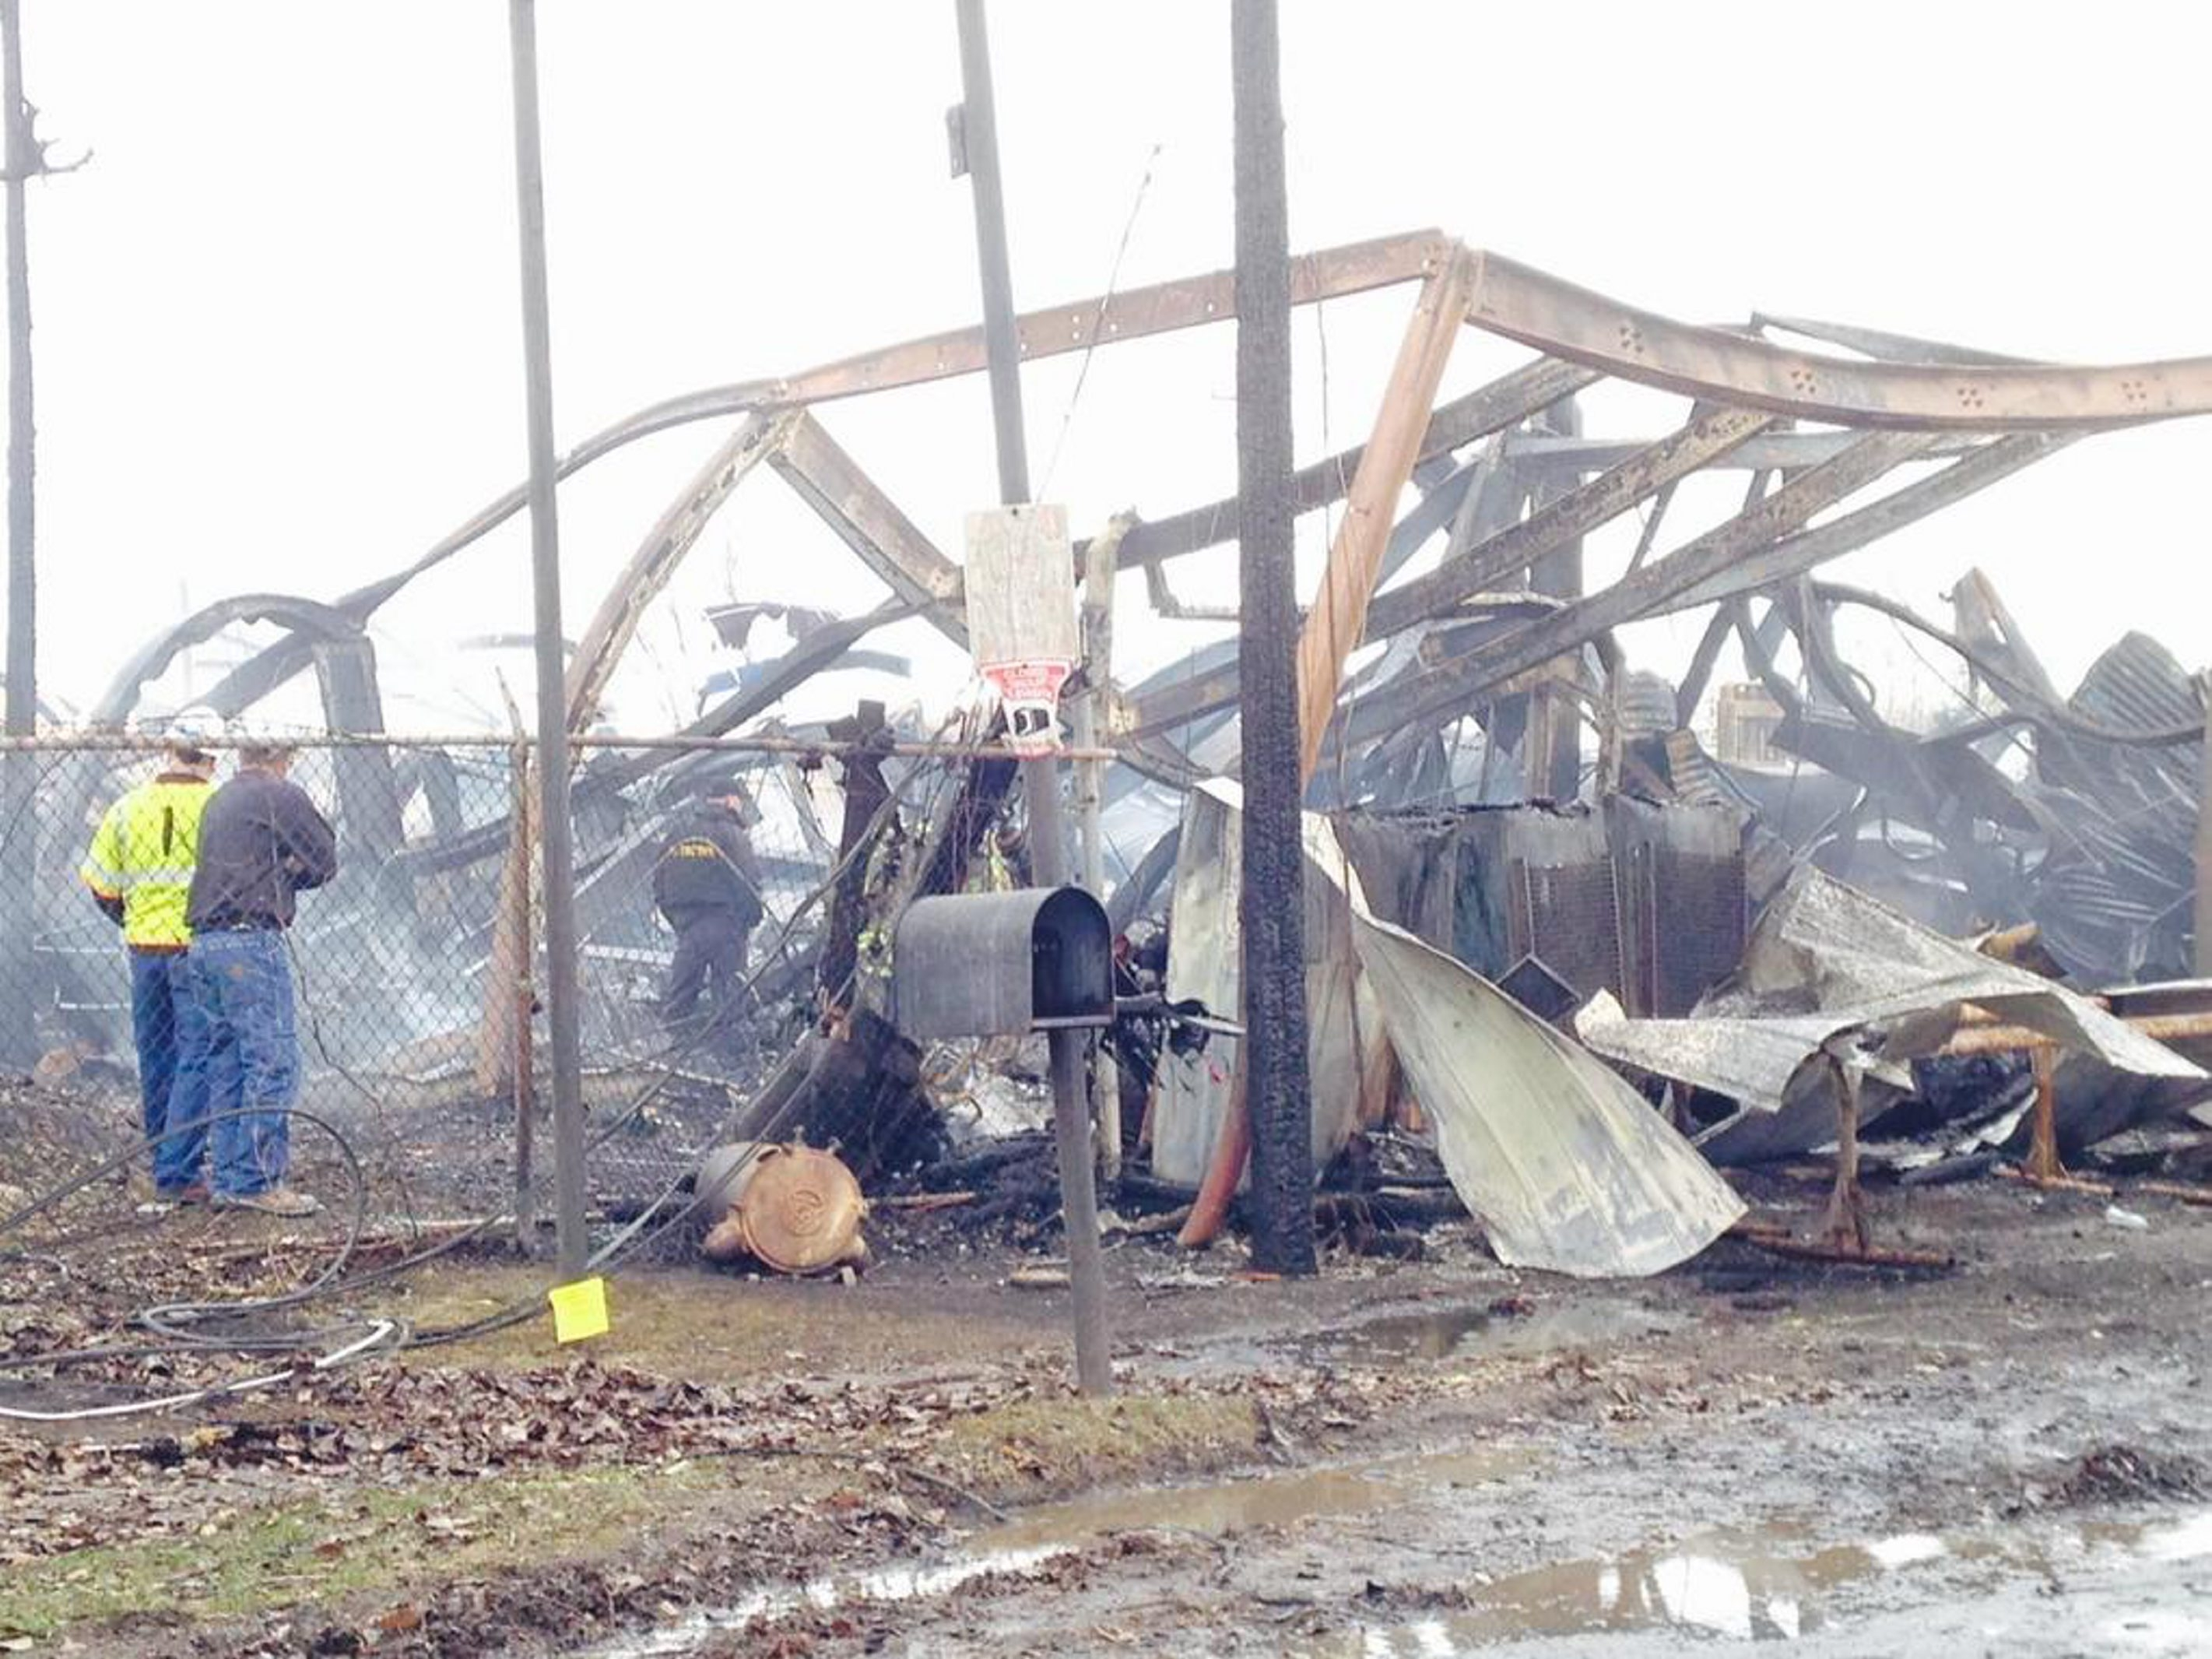 Fire crews and investigators sift throughout the rubble at Placid Harbor Marina in North Tonawanda after a blaze reported at 2:35 a.m. Monday ripped through the 2½-story steel and concrete facility, causing significant damage.